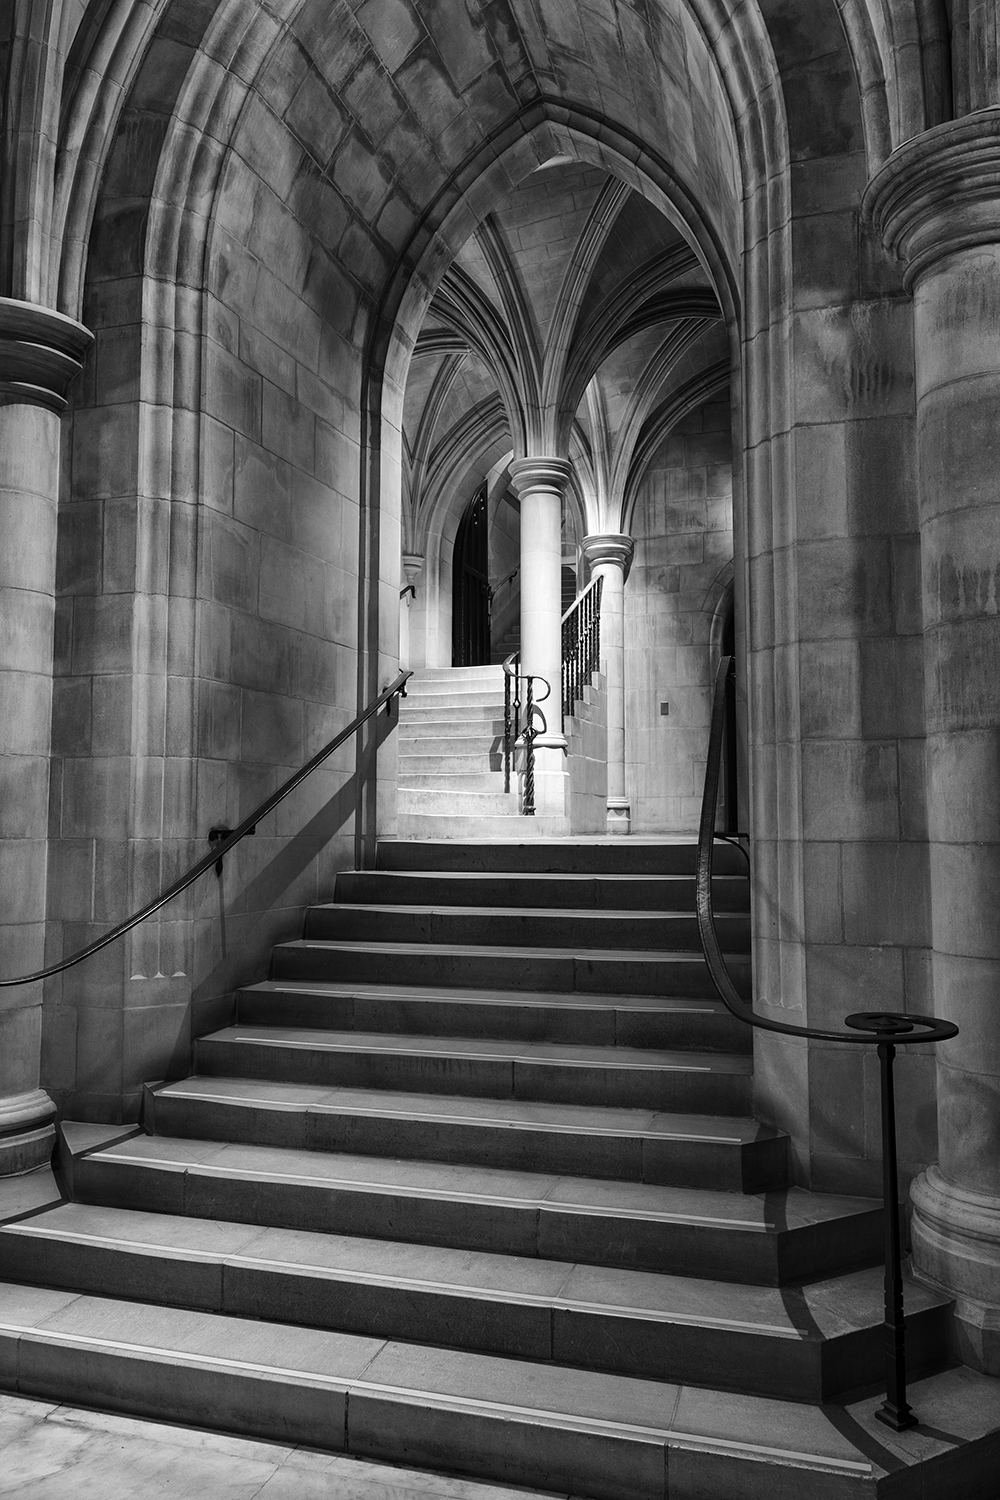 170216 Cathedral 115-1 flat bw.jpg